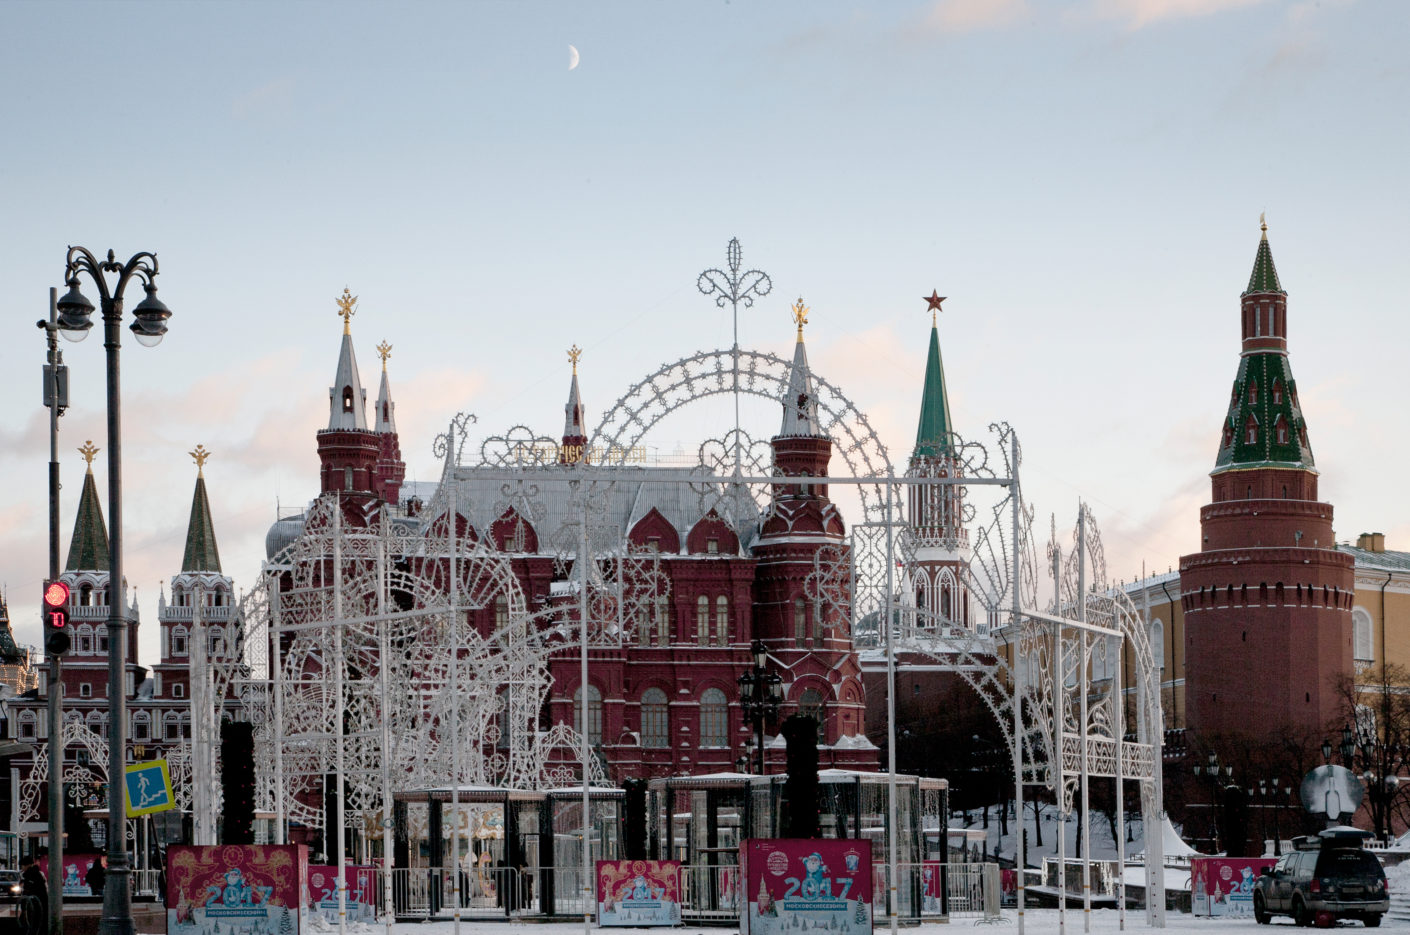 As a foreigner in Moscow, one is at present distracted by the many elaborately designed arches that scream out at you in stridently illuminated bright colors, the arcades and the temporary installations. They are the result of a new program of beautifying the city – commissioned by City Hall. The photo shows the view to the Red Square in December 2016.